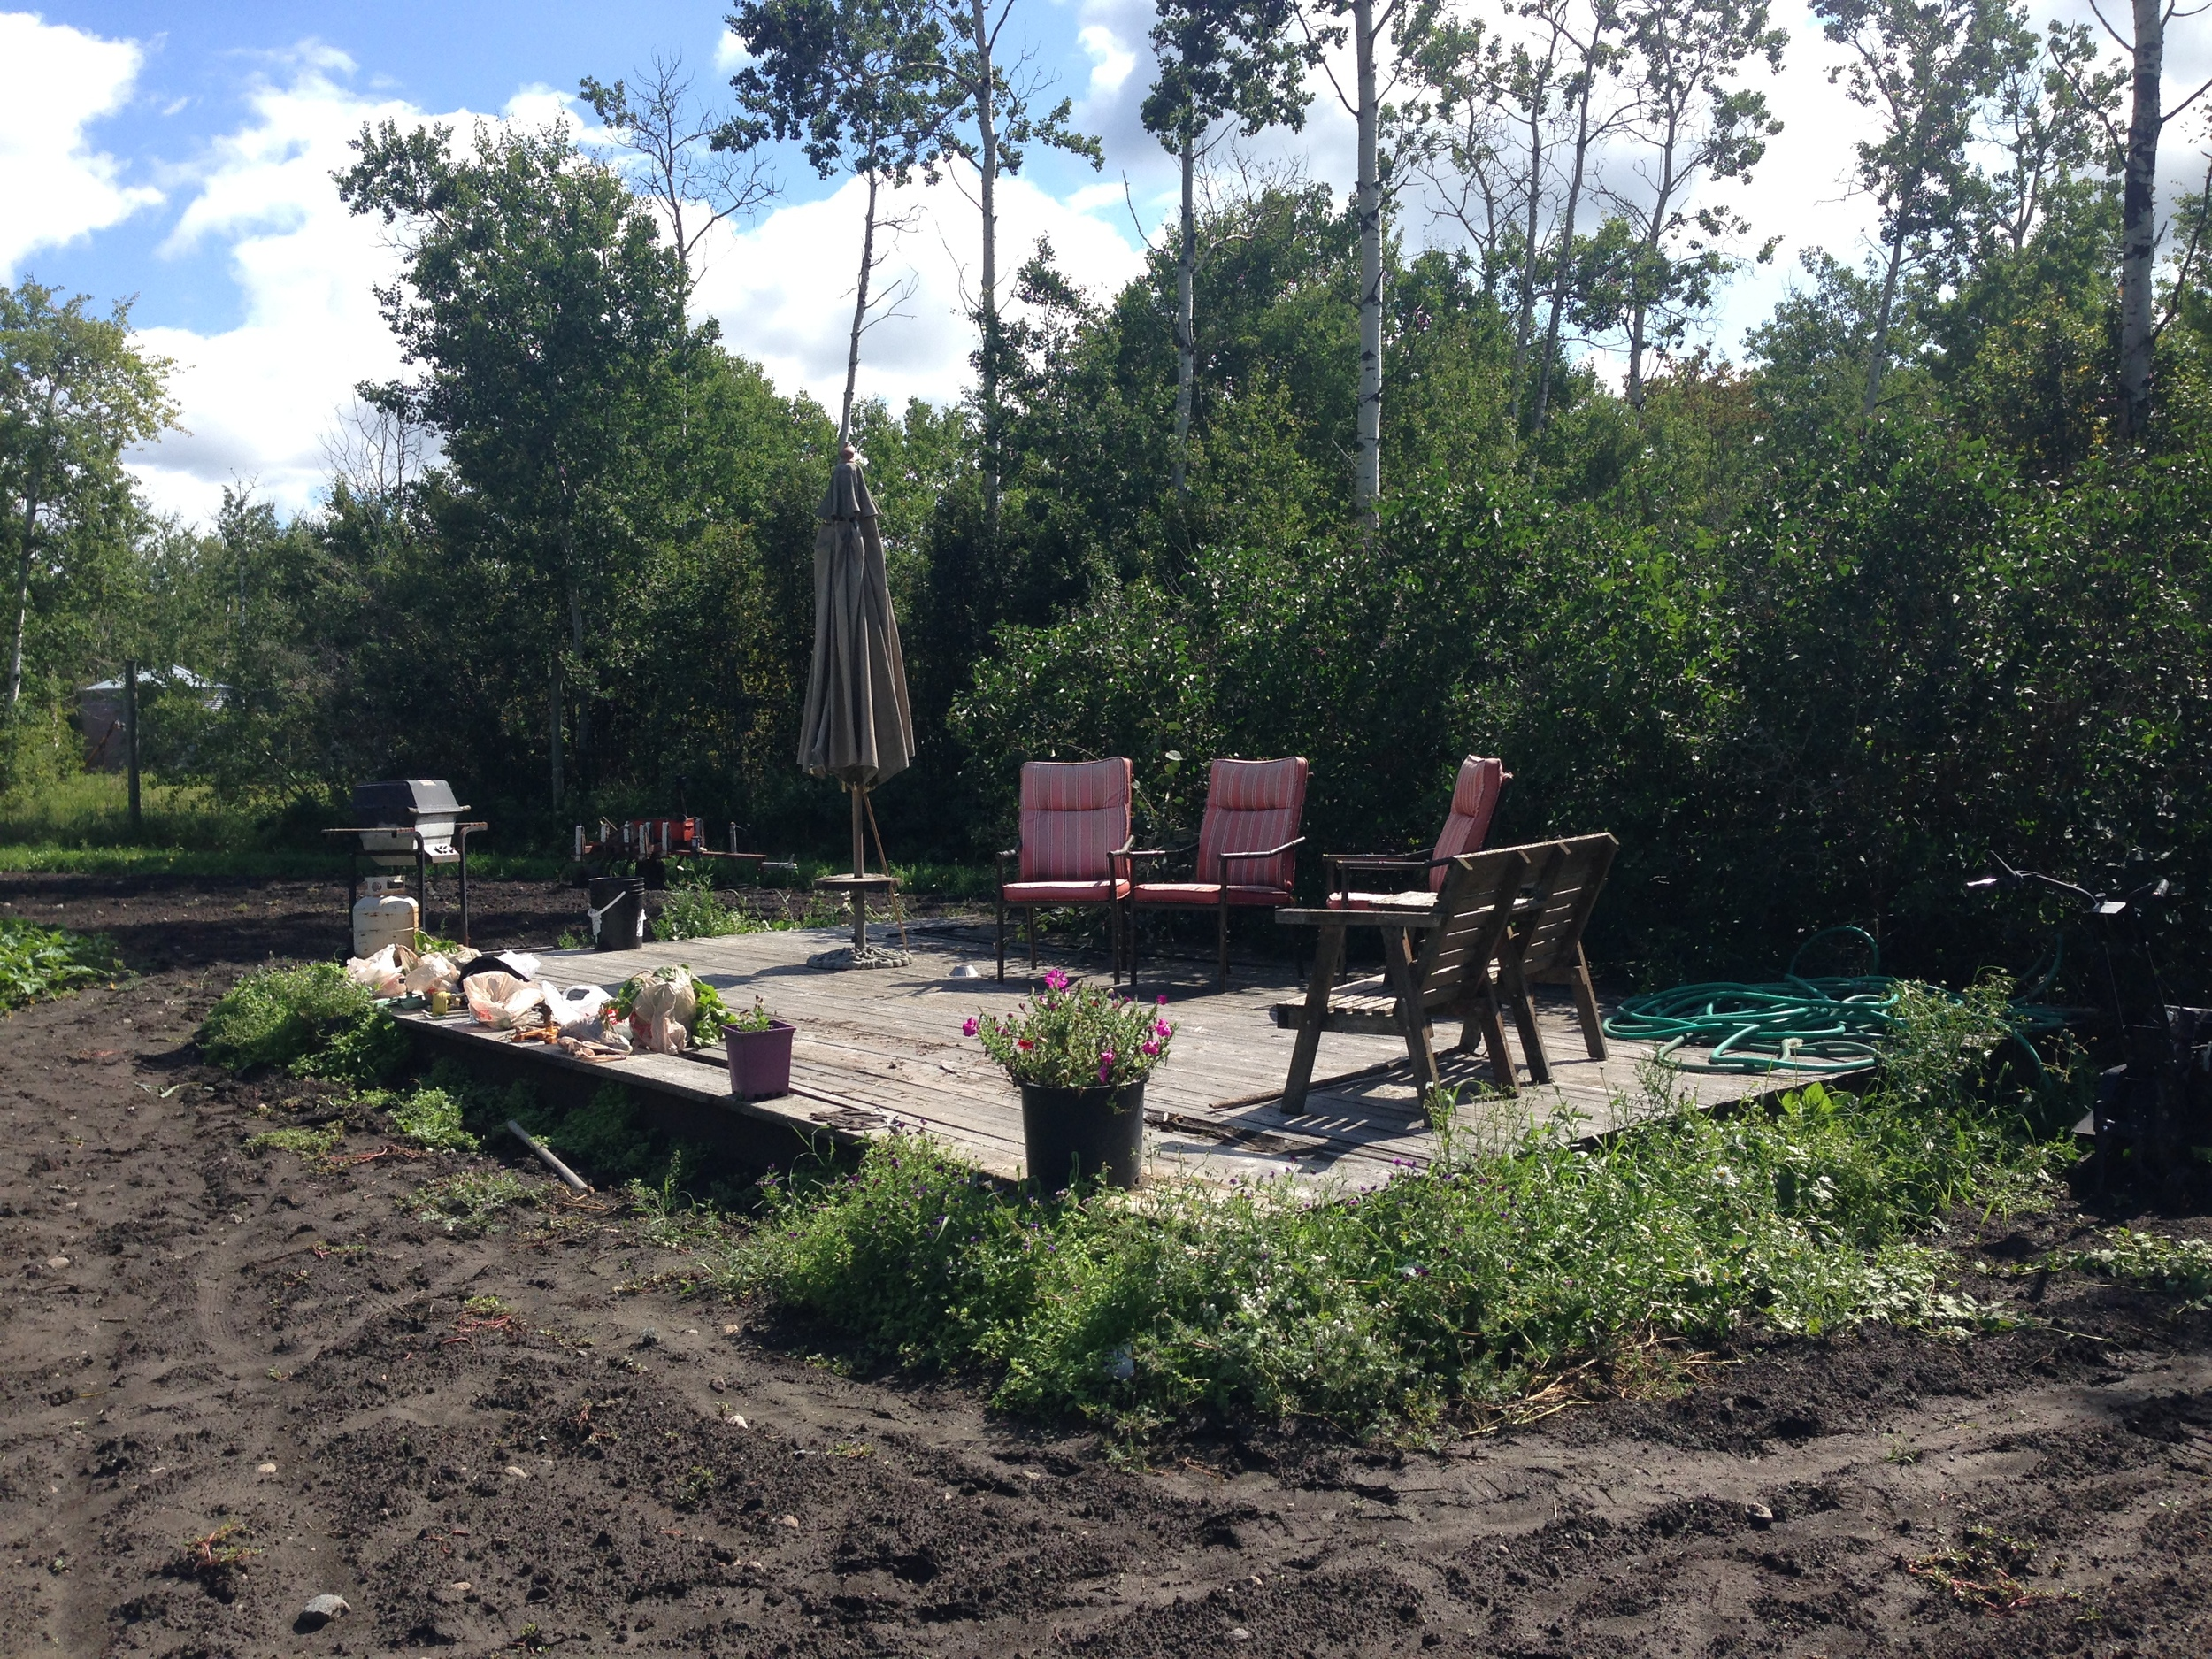 The perfect little space to eat lunch and relax whilst enjoying the garden and the surrounding forest.